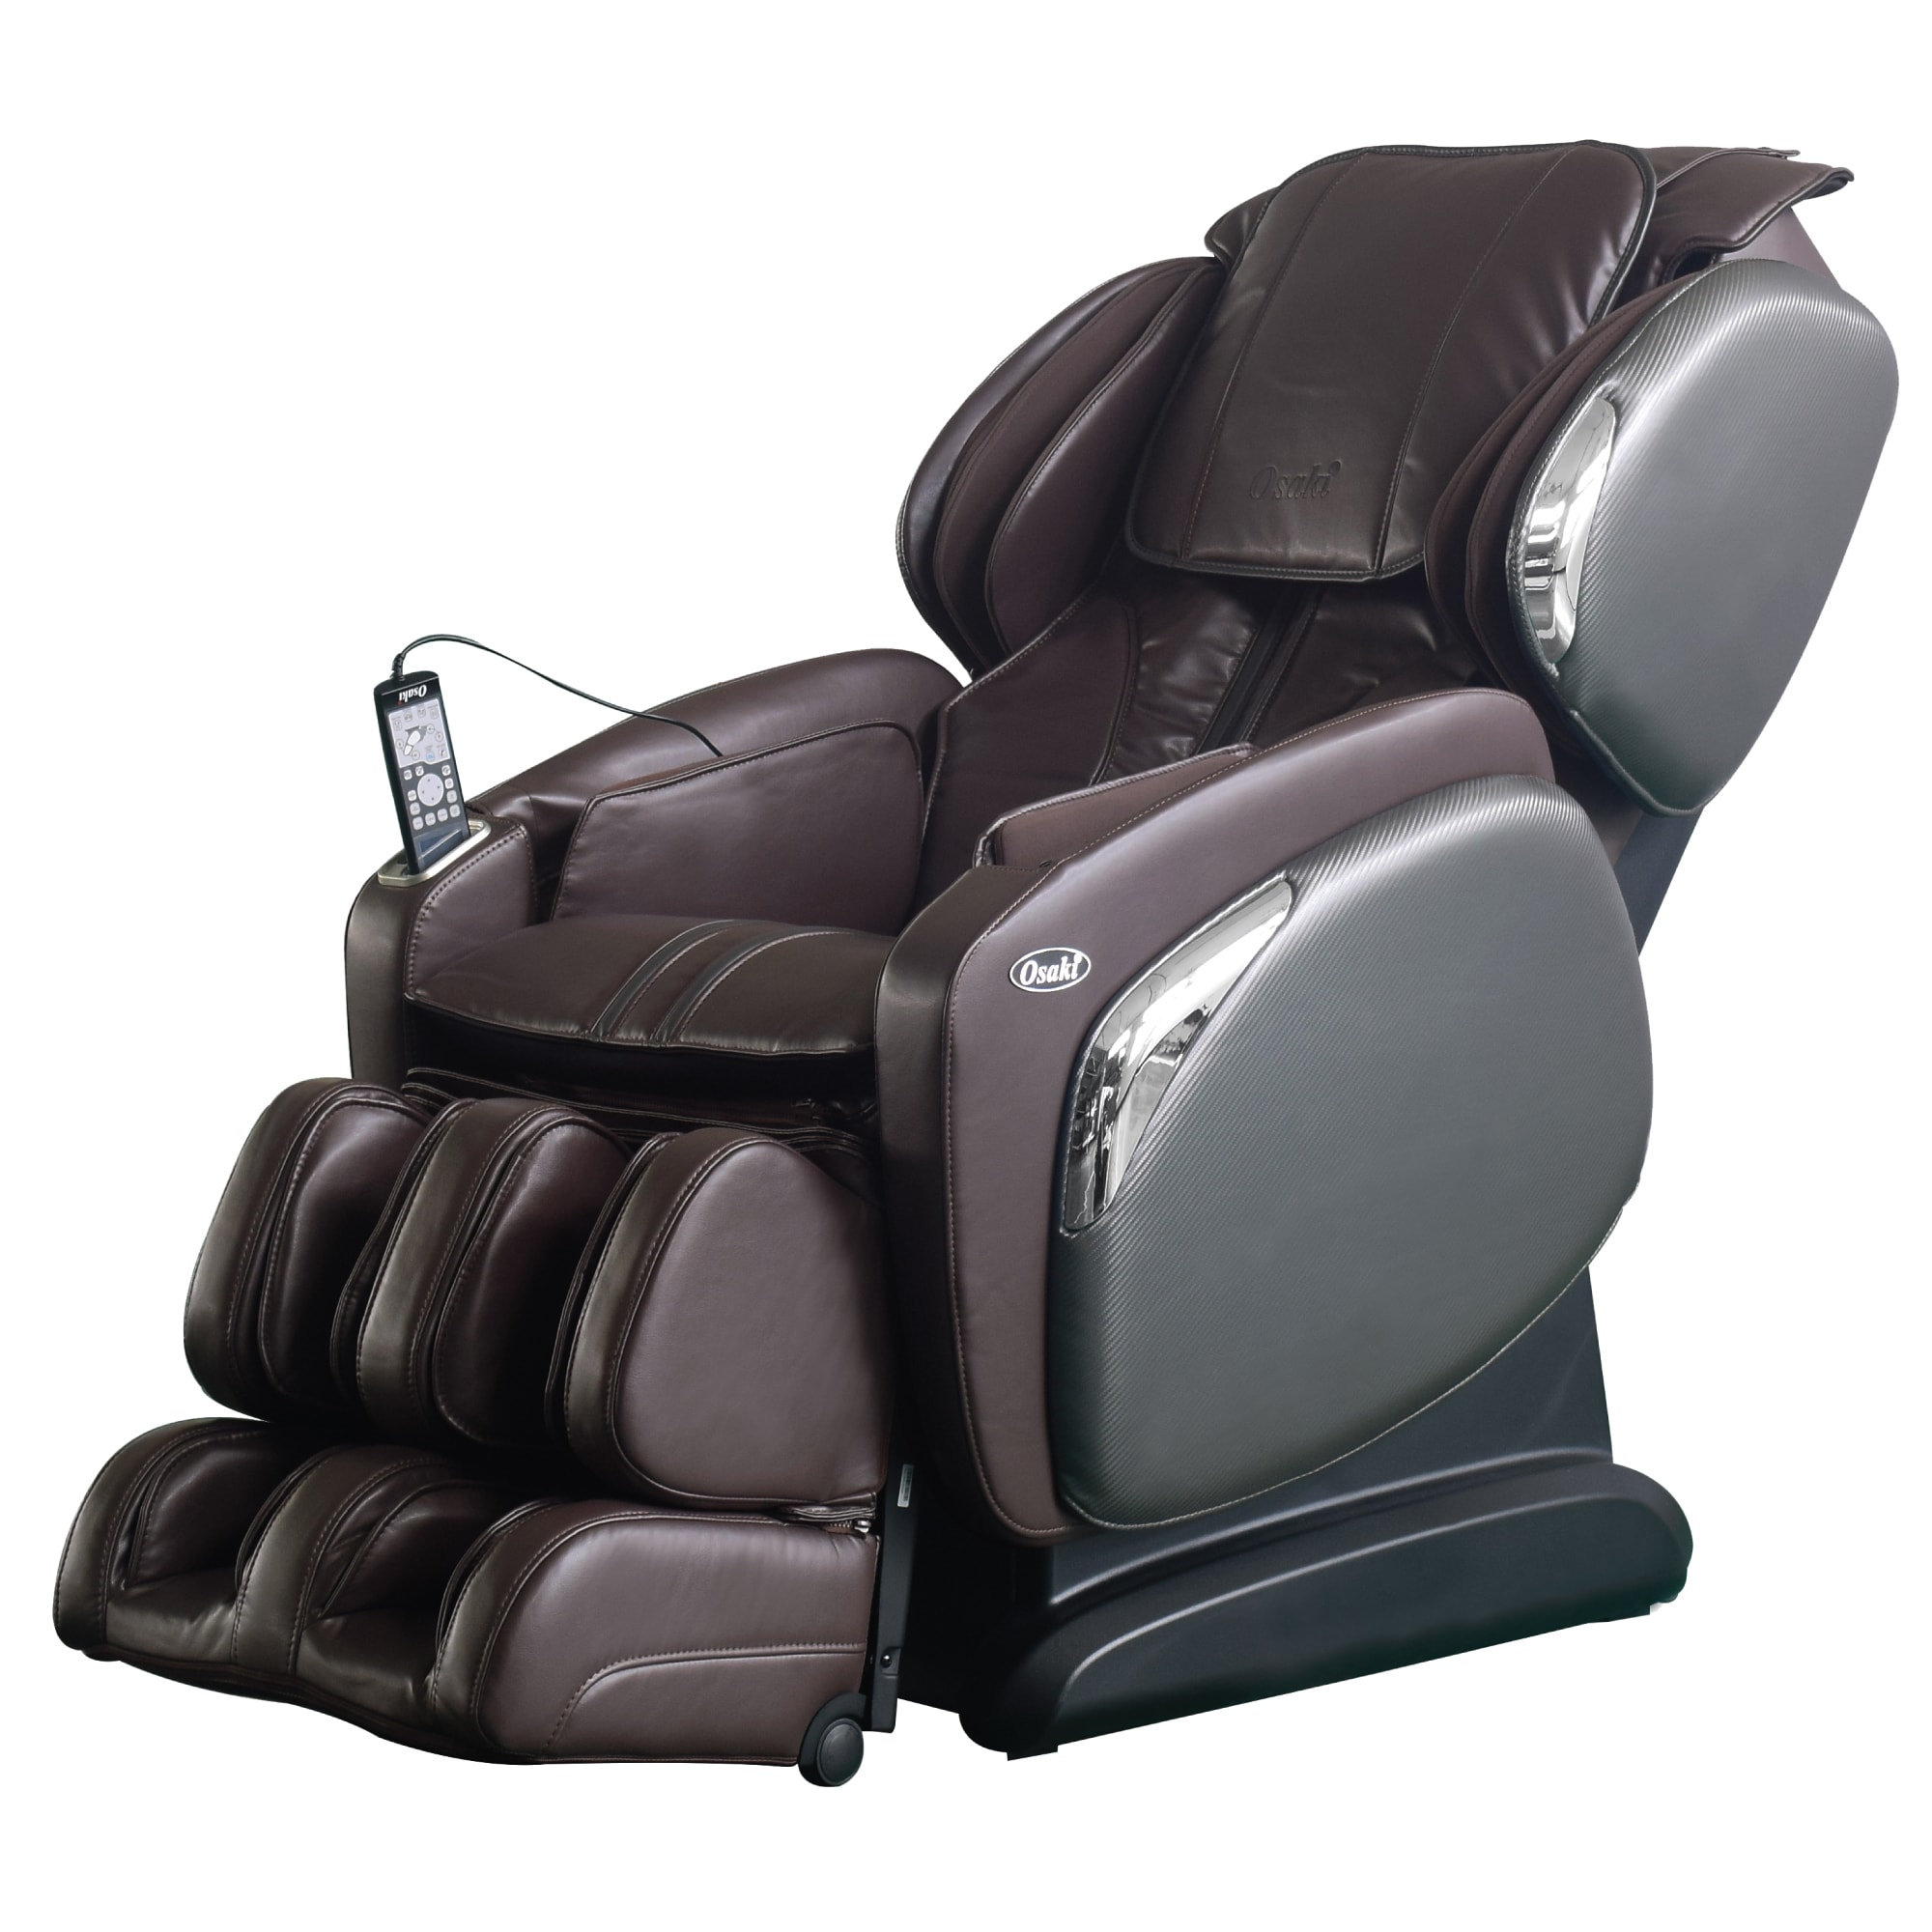 Shop Osaki OS 4000LS Massage Chair   Free Shipping Today   Overstock.com    11745246